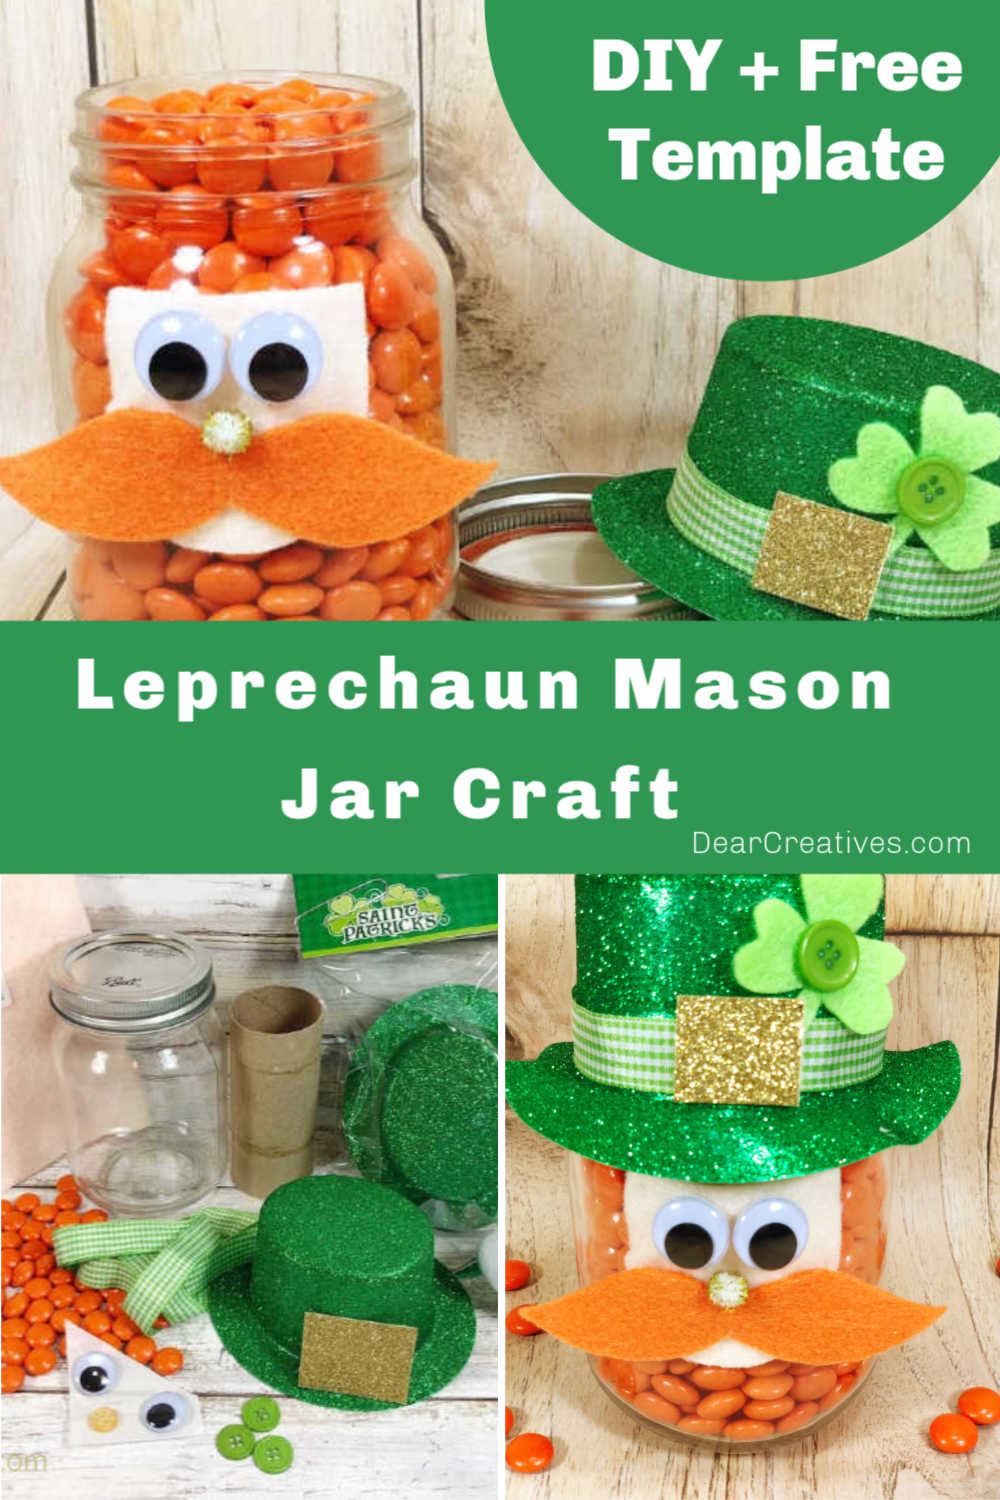 Leprechaun Mason Jar Craft – DIY St. Patrick's Decoration!